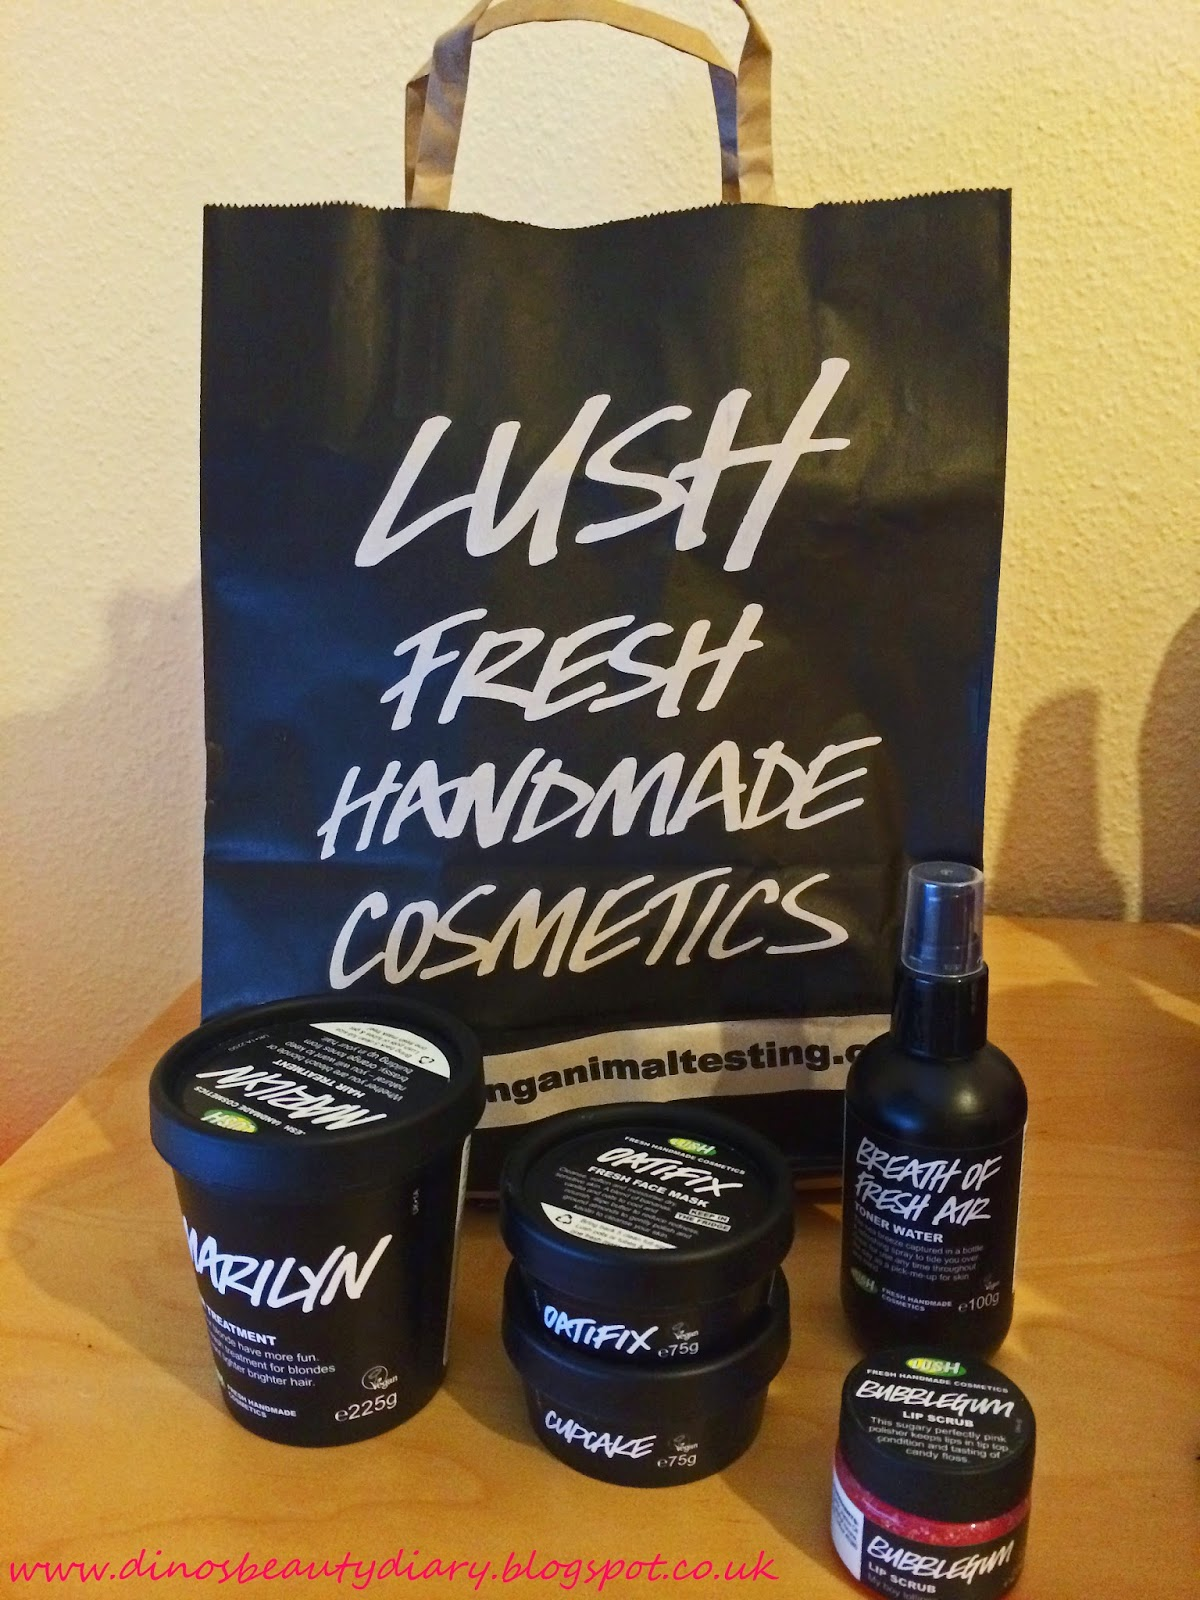 Lush Haul - DinosBeautyDiary.blogspot.co.uk